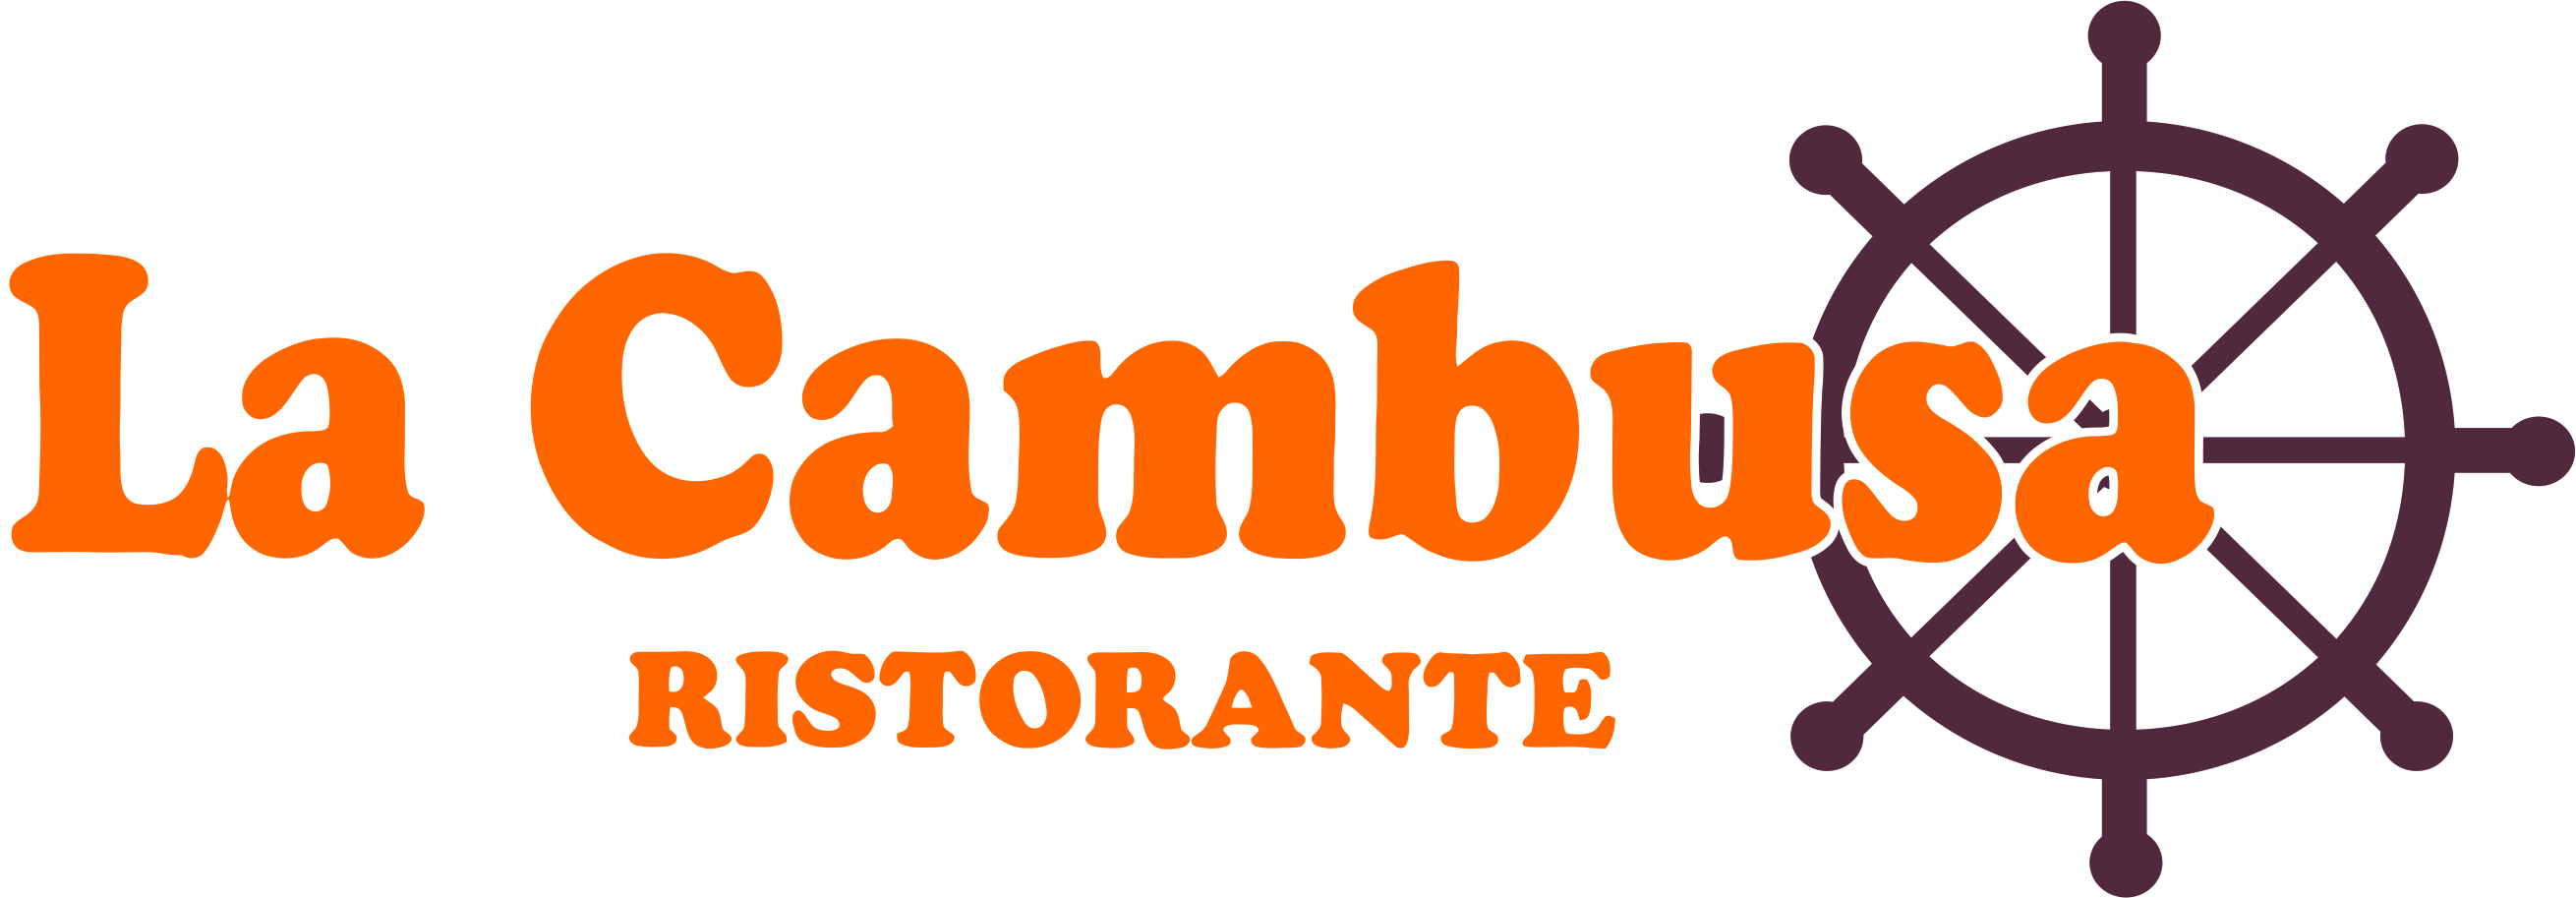 https://lacambusamontalto.it/wp-content/uploads/2016/02/LOGO.jpg